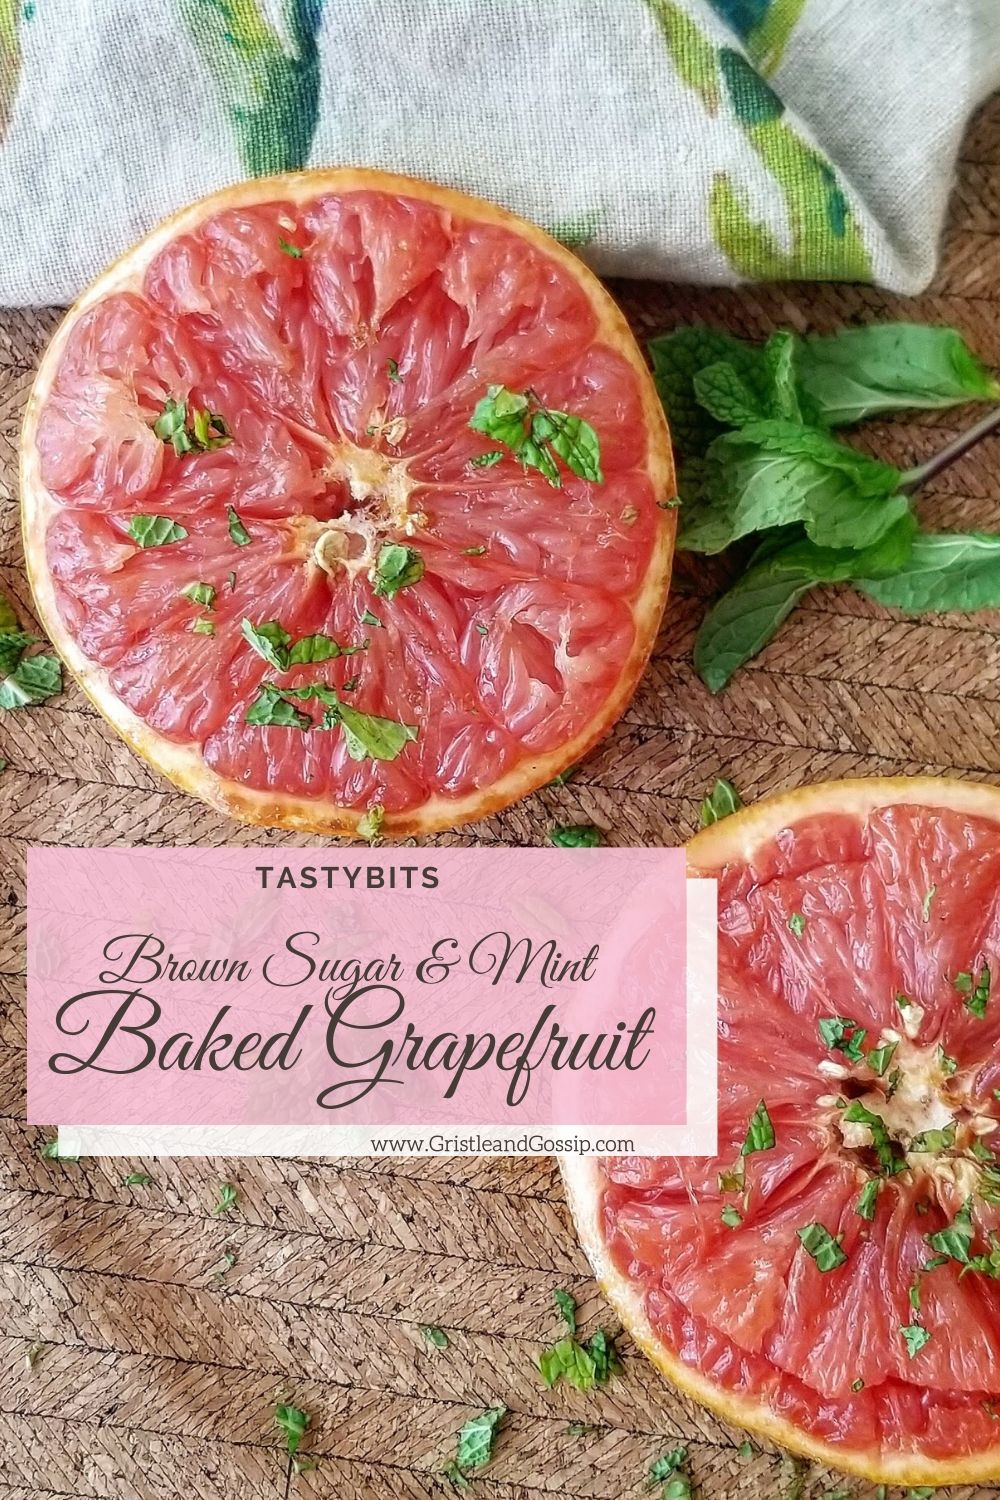 BAKED GRAPEFRUIT WITH BROWN SUGAR AND MINT